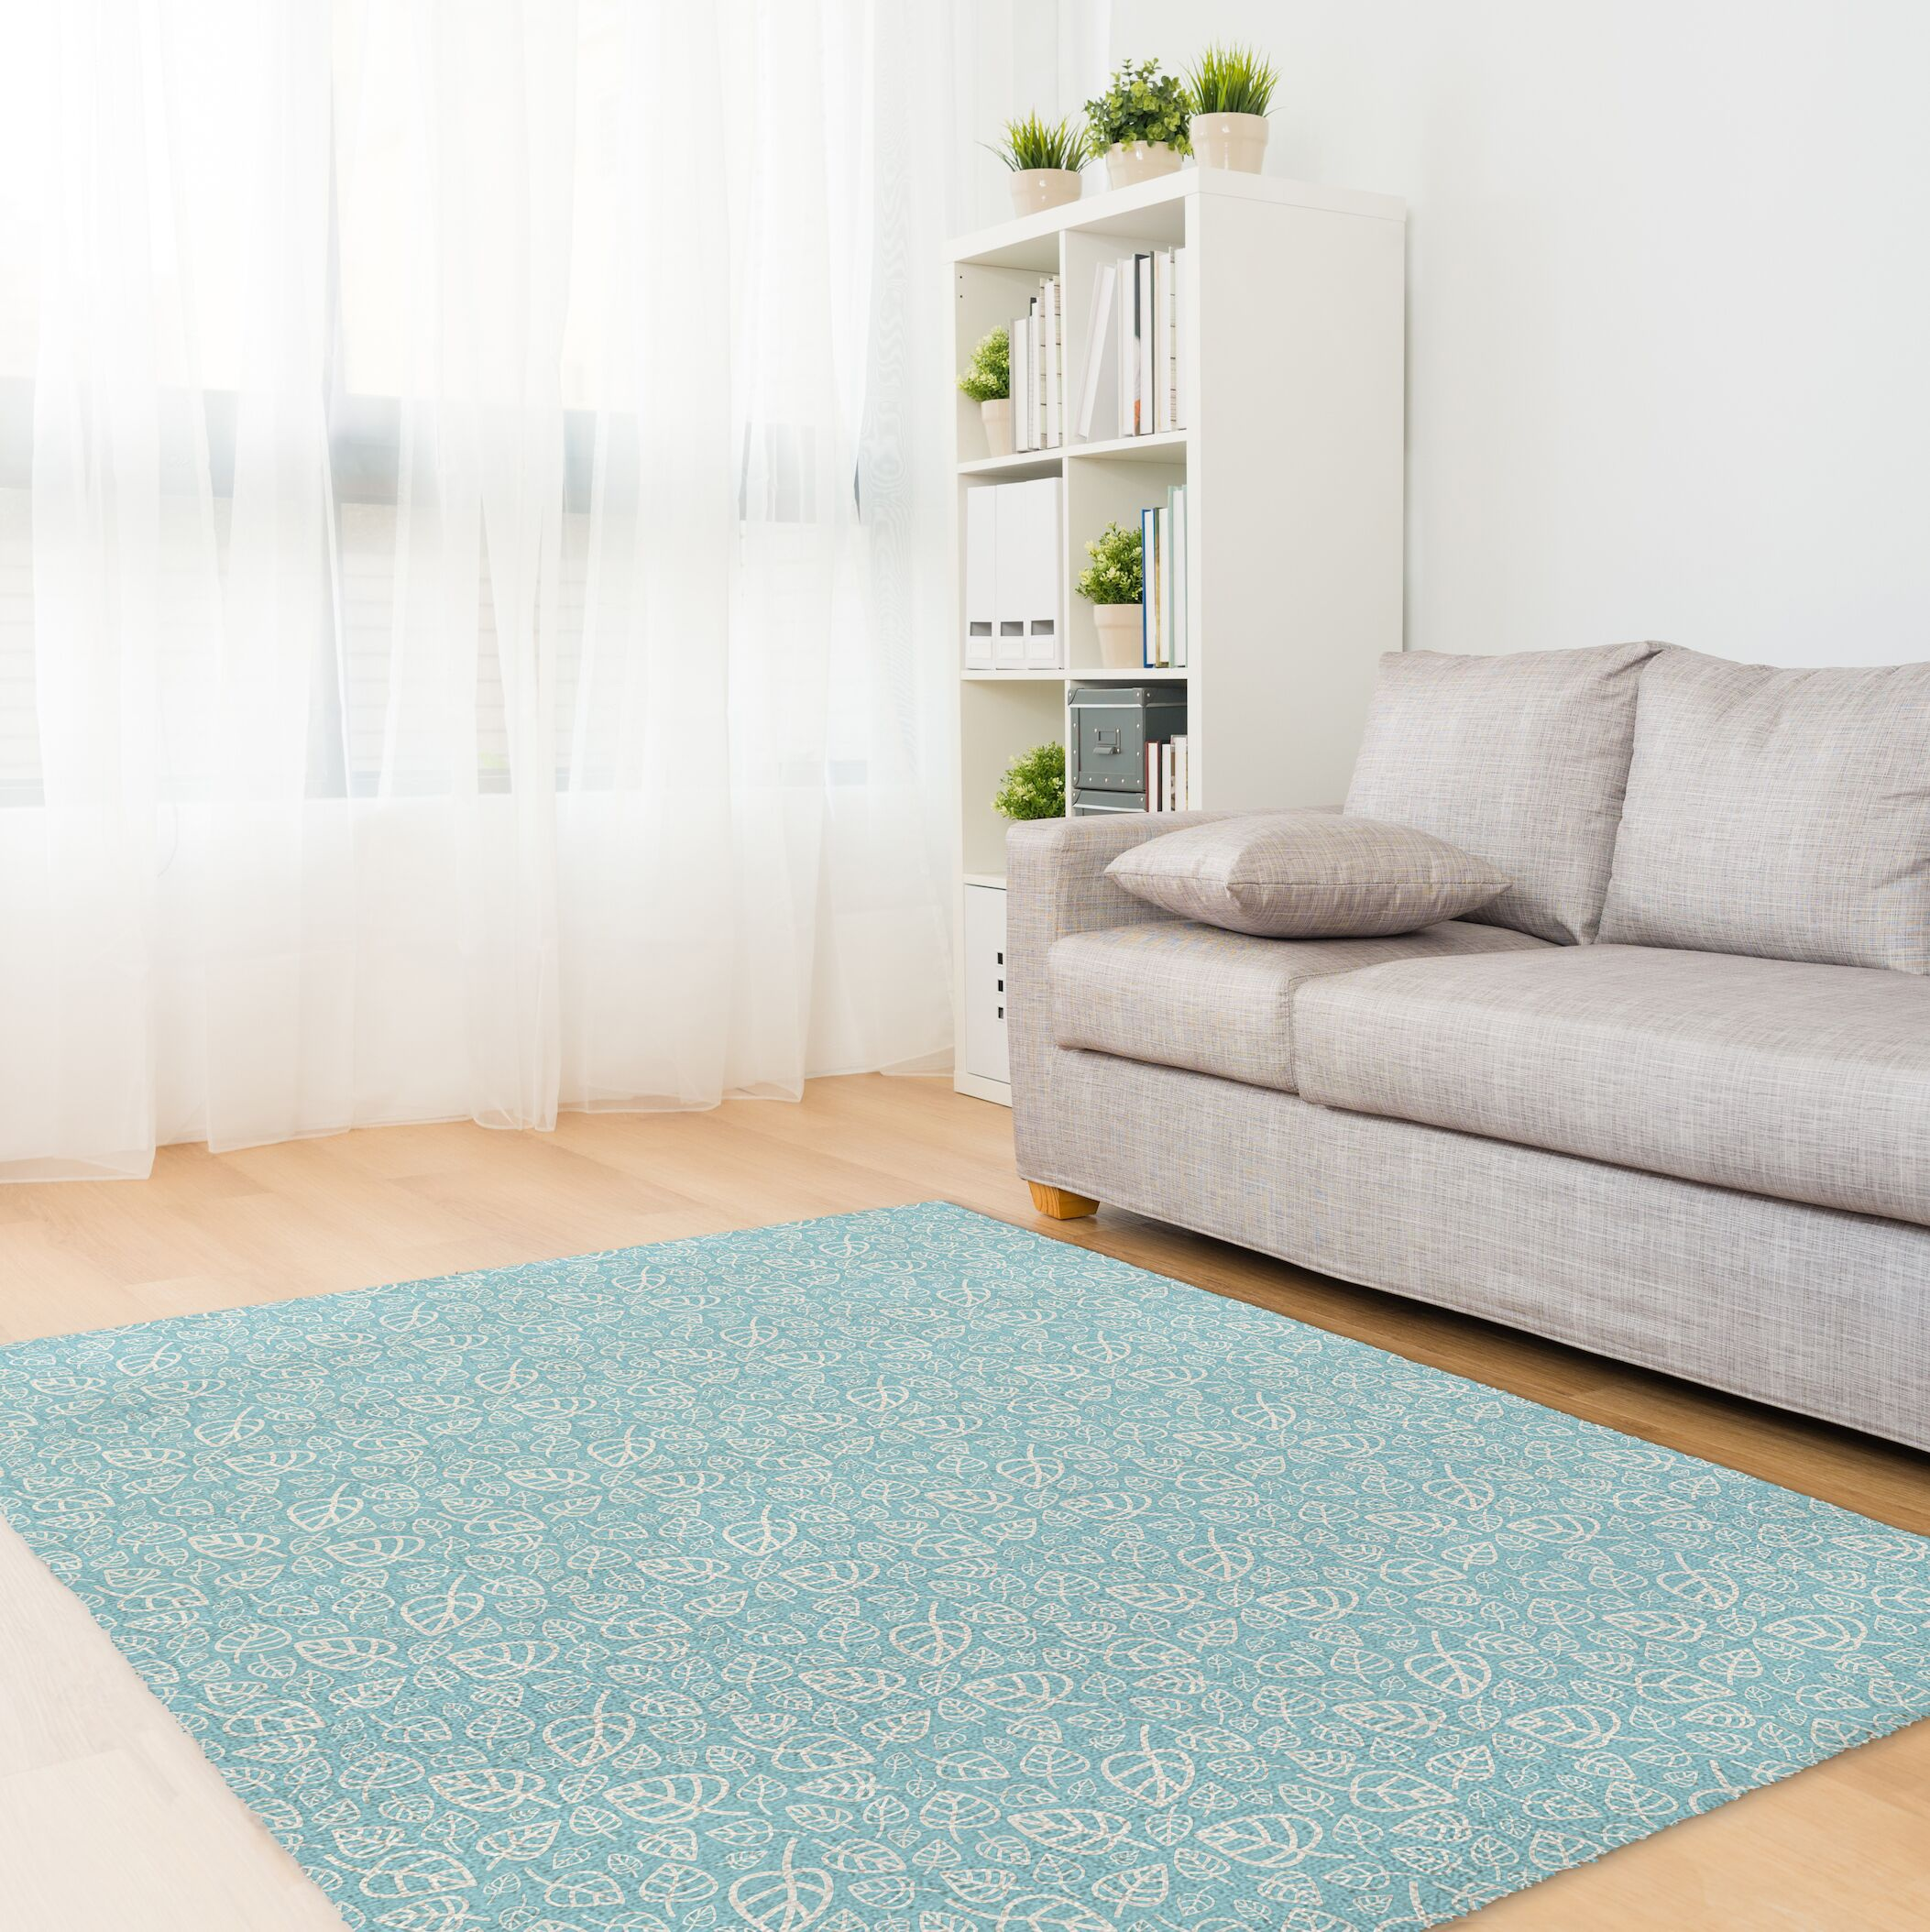 Decarlo Aqua Area Rug Rug Size: Rectangle 5' x 7'